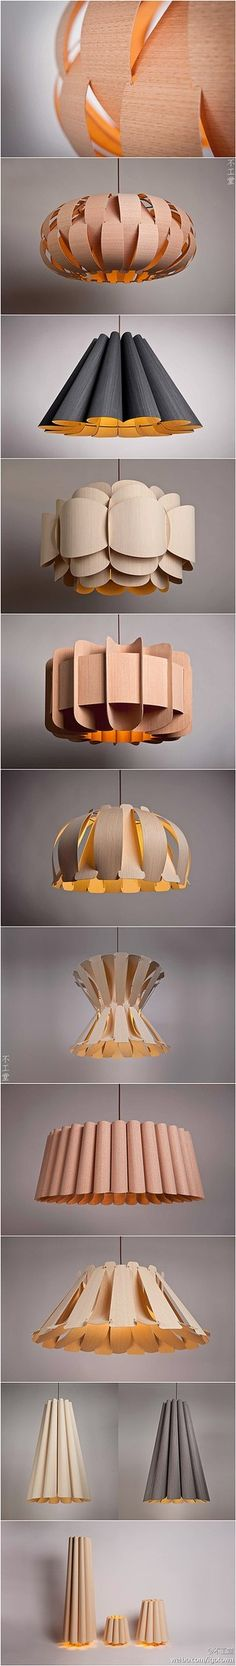 8 best diwali lamps images homemade paper crafting paper lamps rh pinterest com